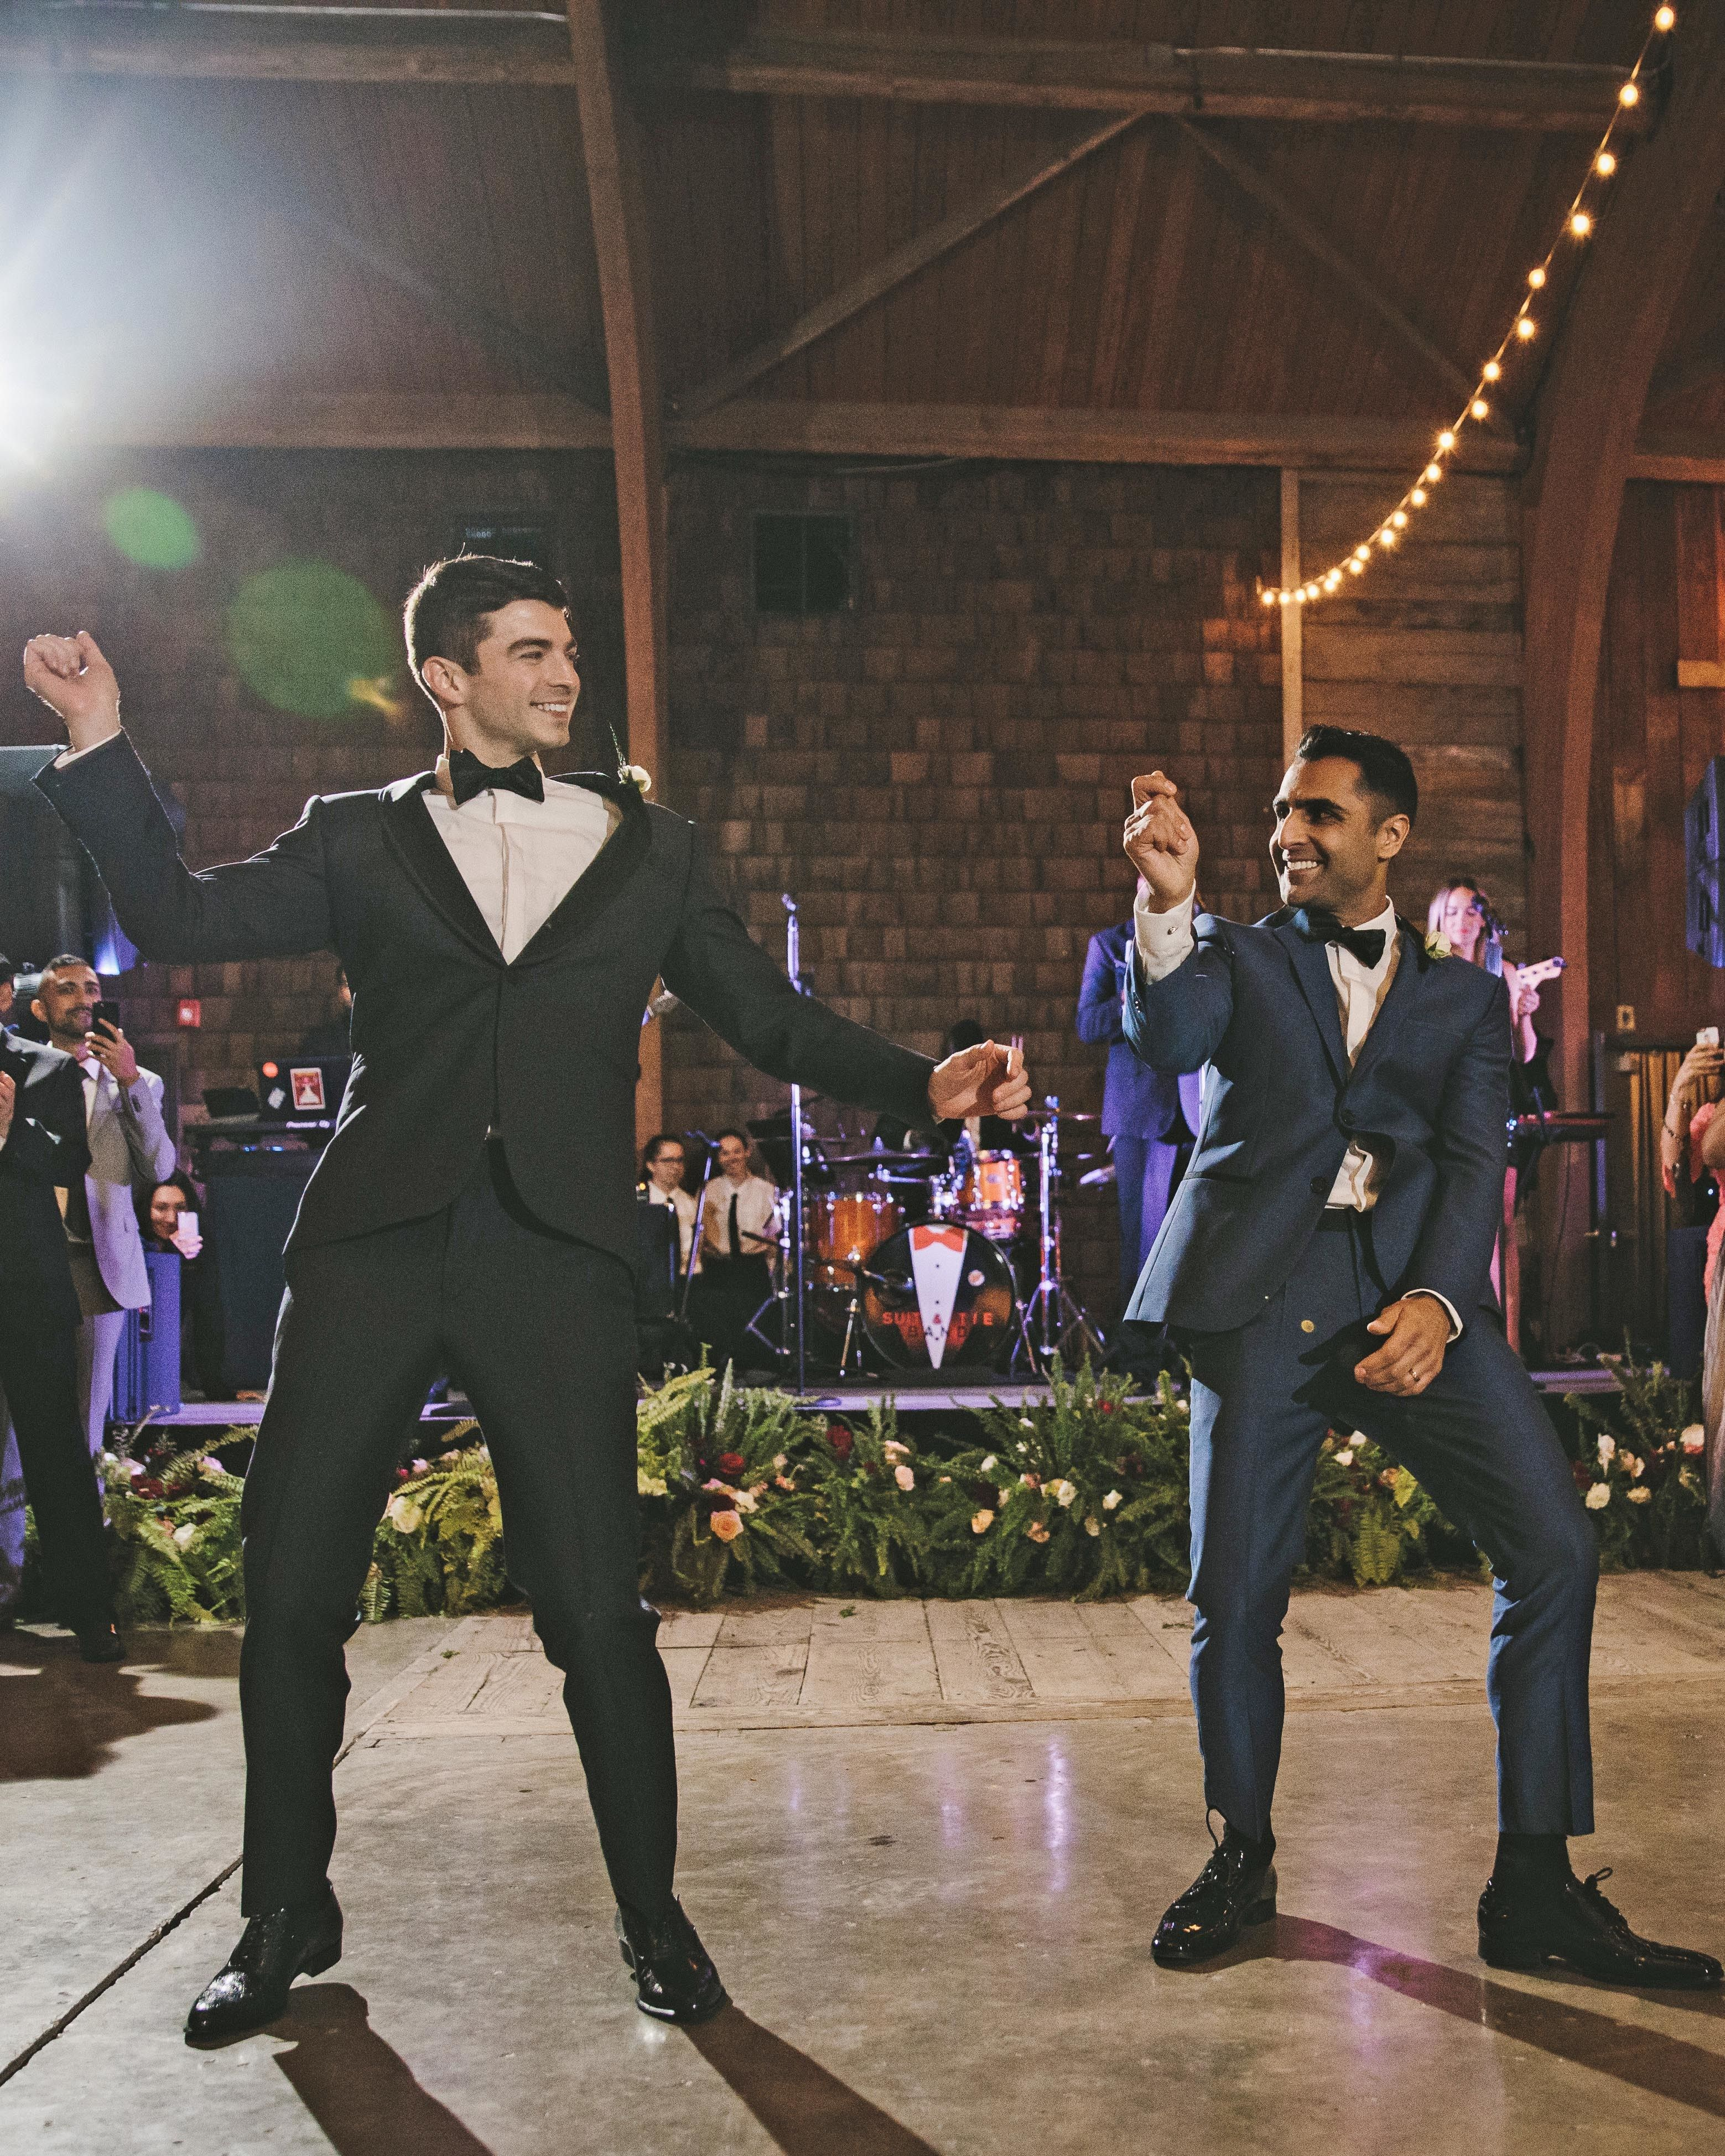 A Joyful, Vibrant Wedding at a Luxury Camp in Upstate New